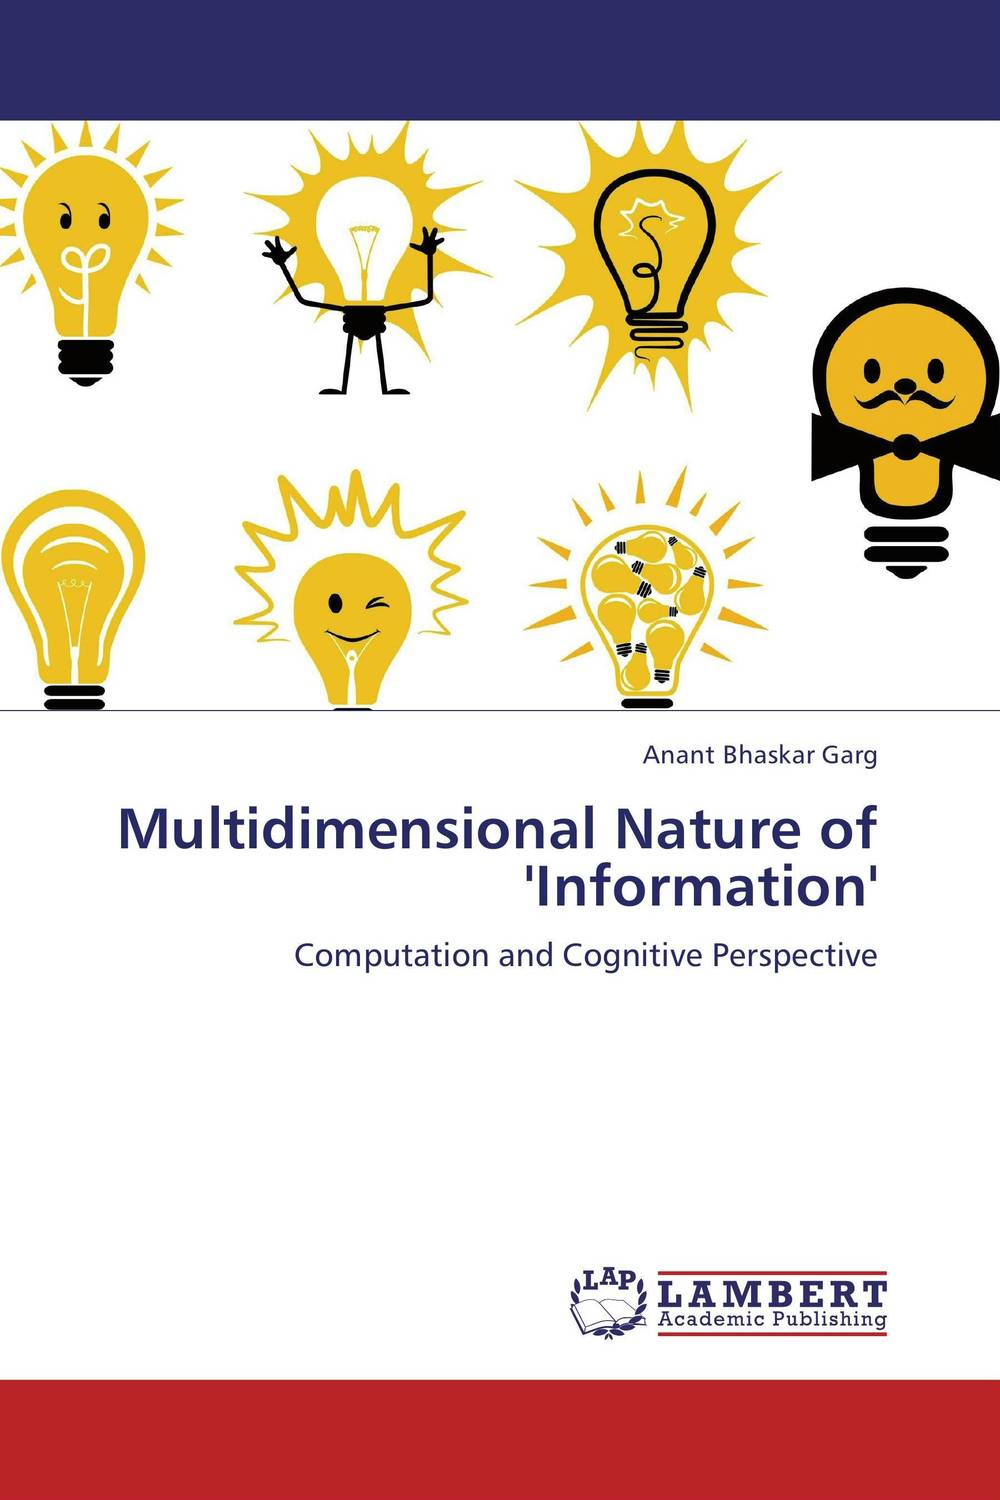 Multidimensional Nature of 'Information' clustering information entities based on statistical methods